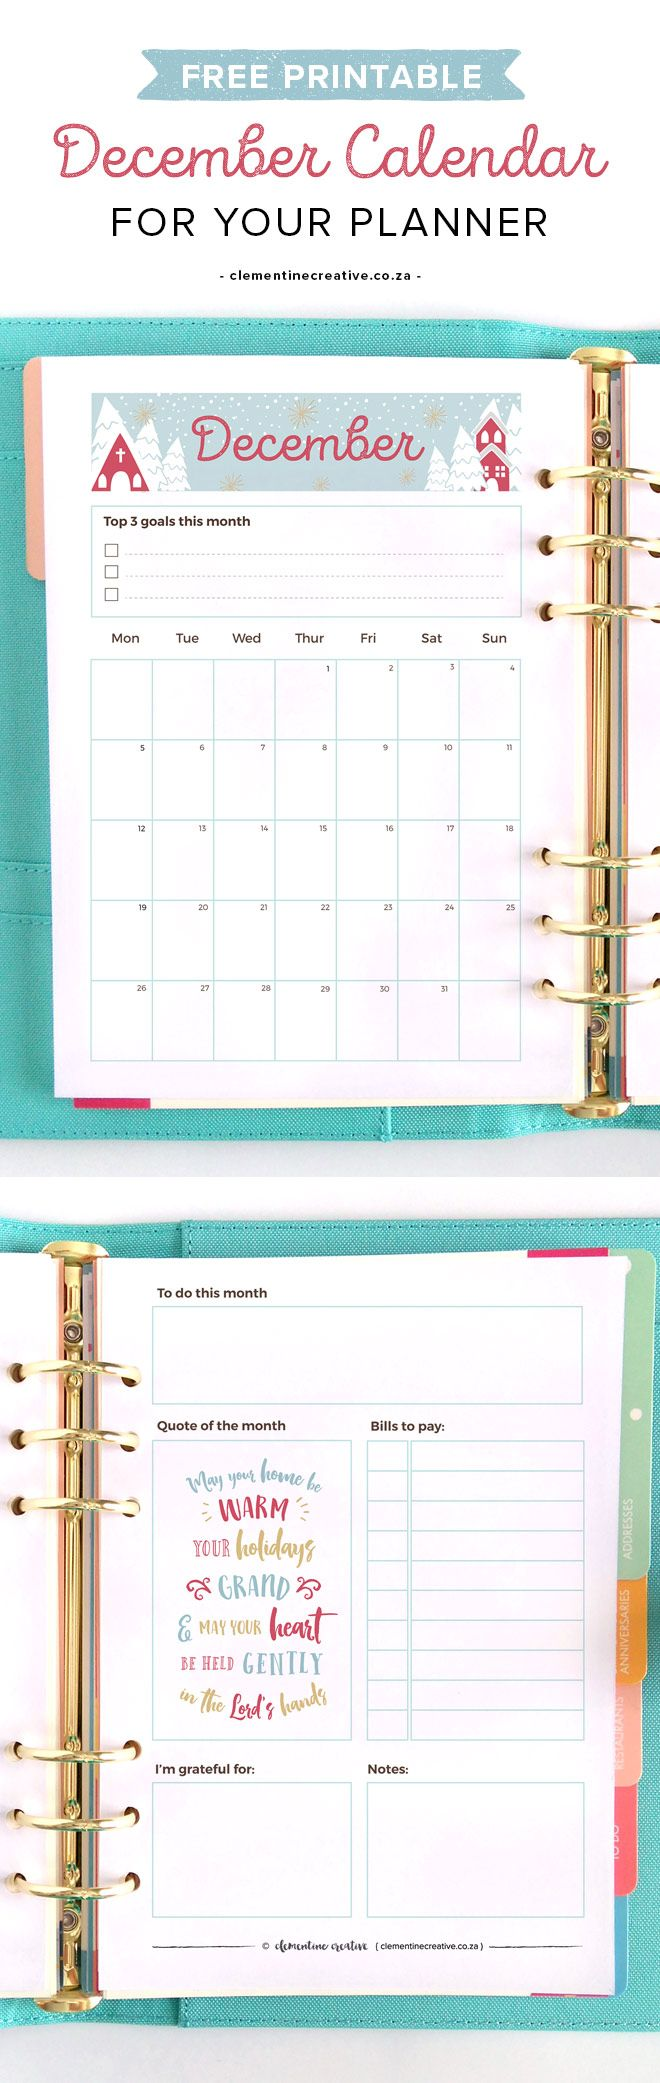 Get a new free printable monthly planner every month to insert in your kikki.K, Filofax or larger binder. Get December's calendar/planner here.